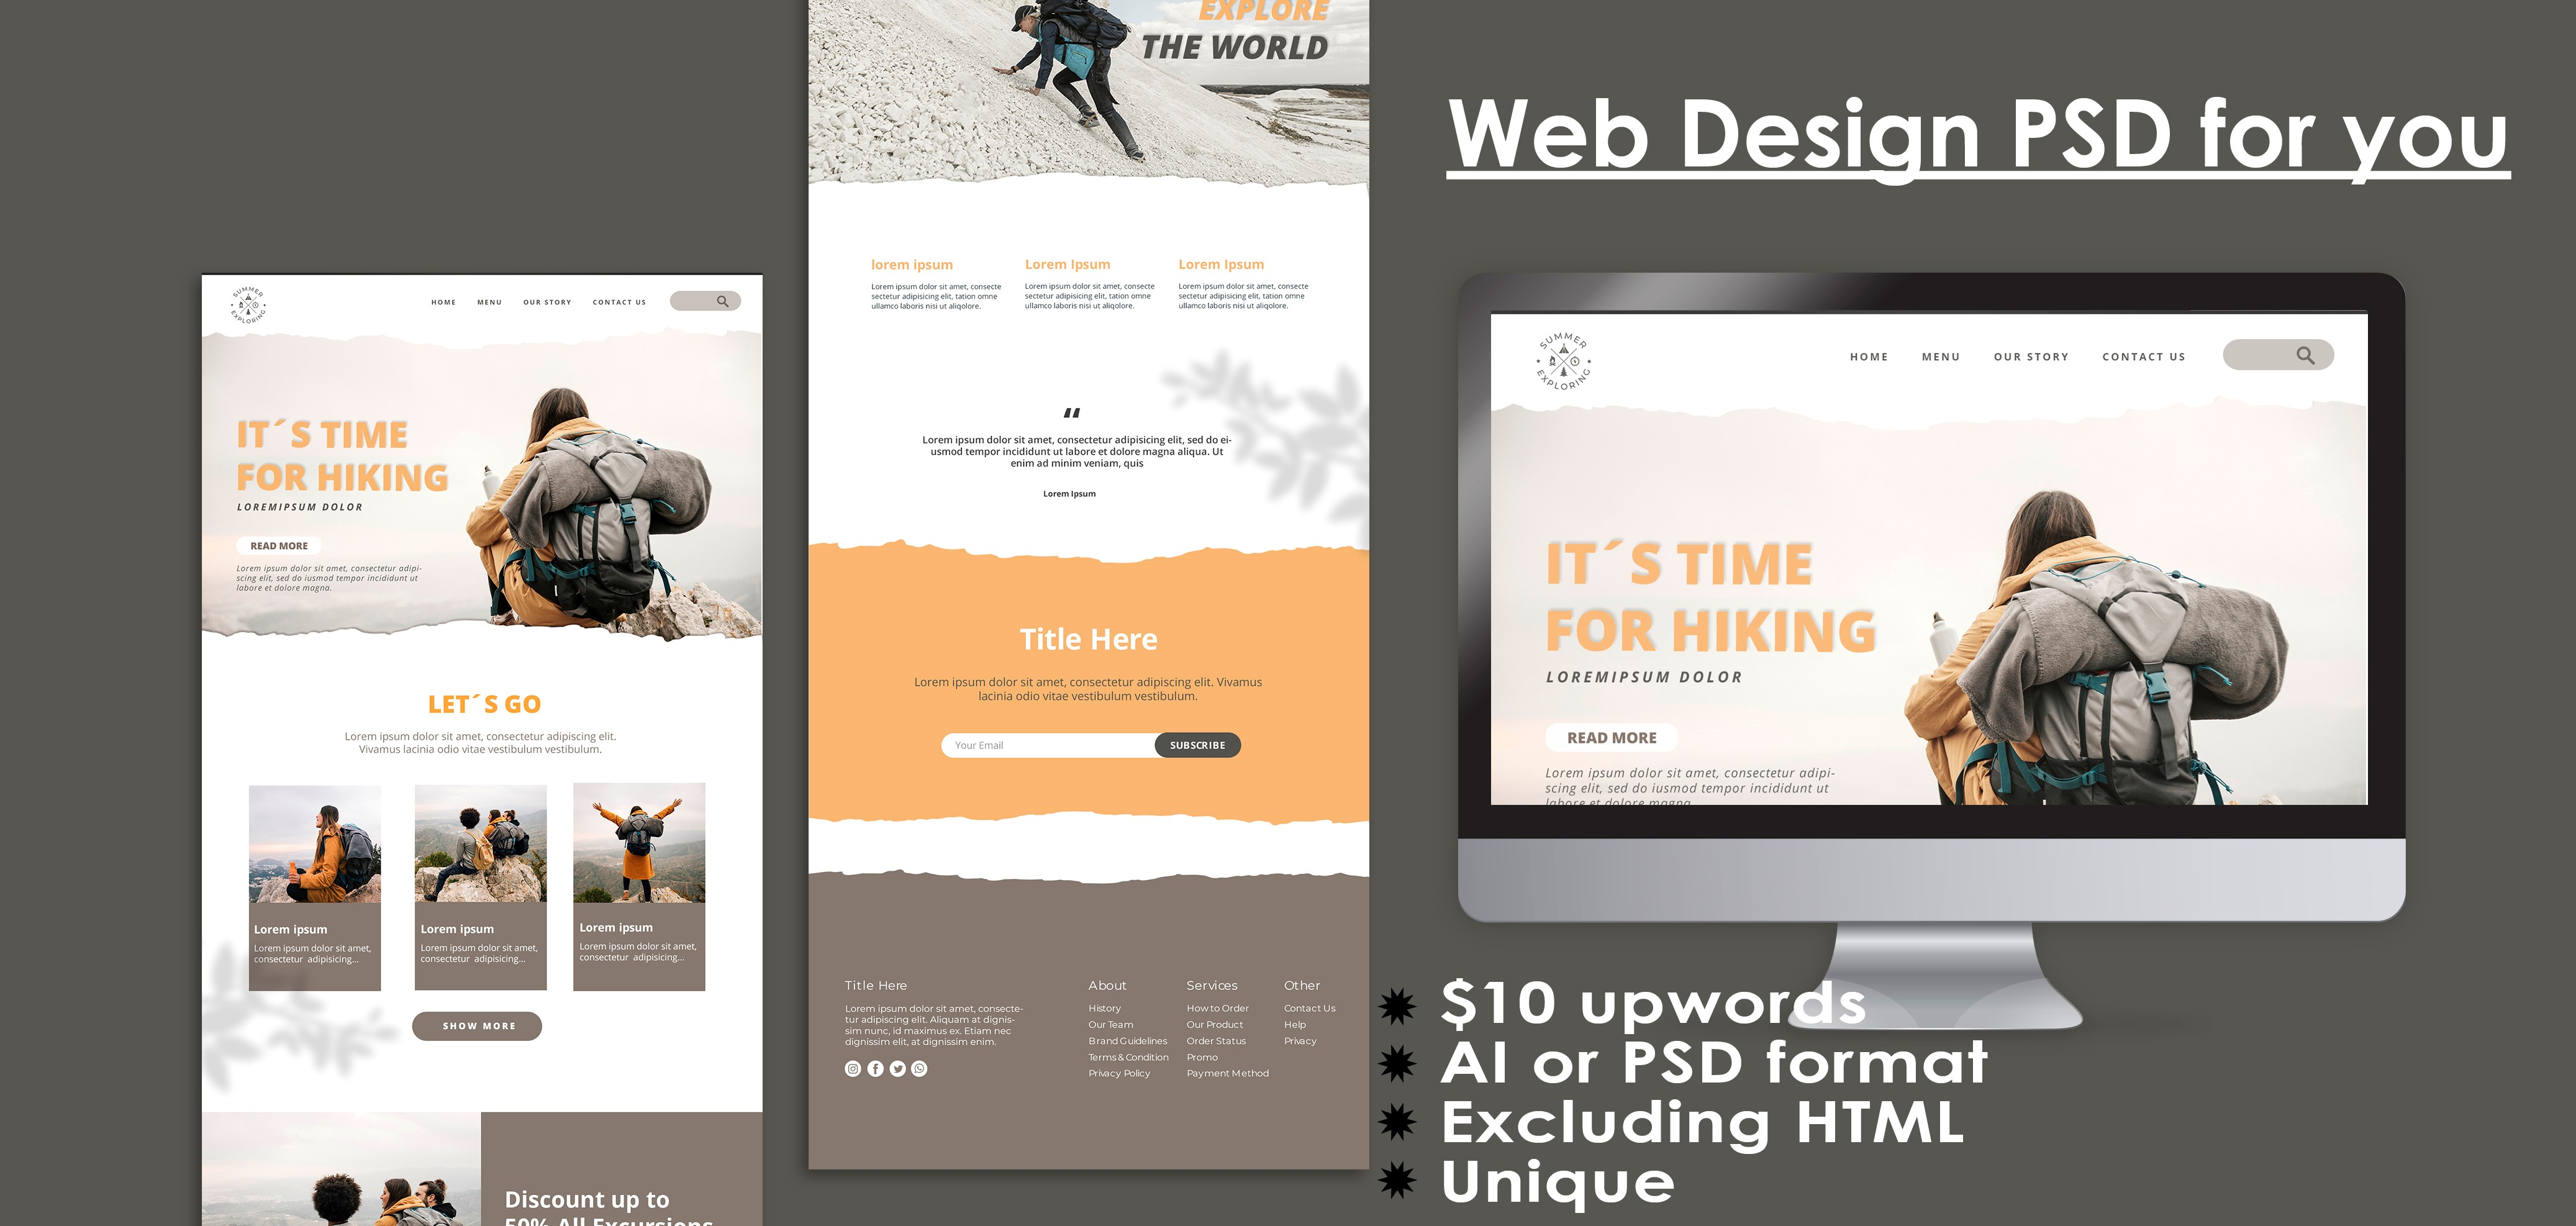 Design web site template or website PSD